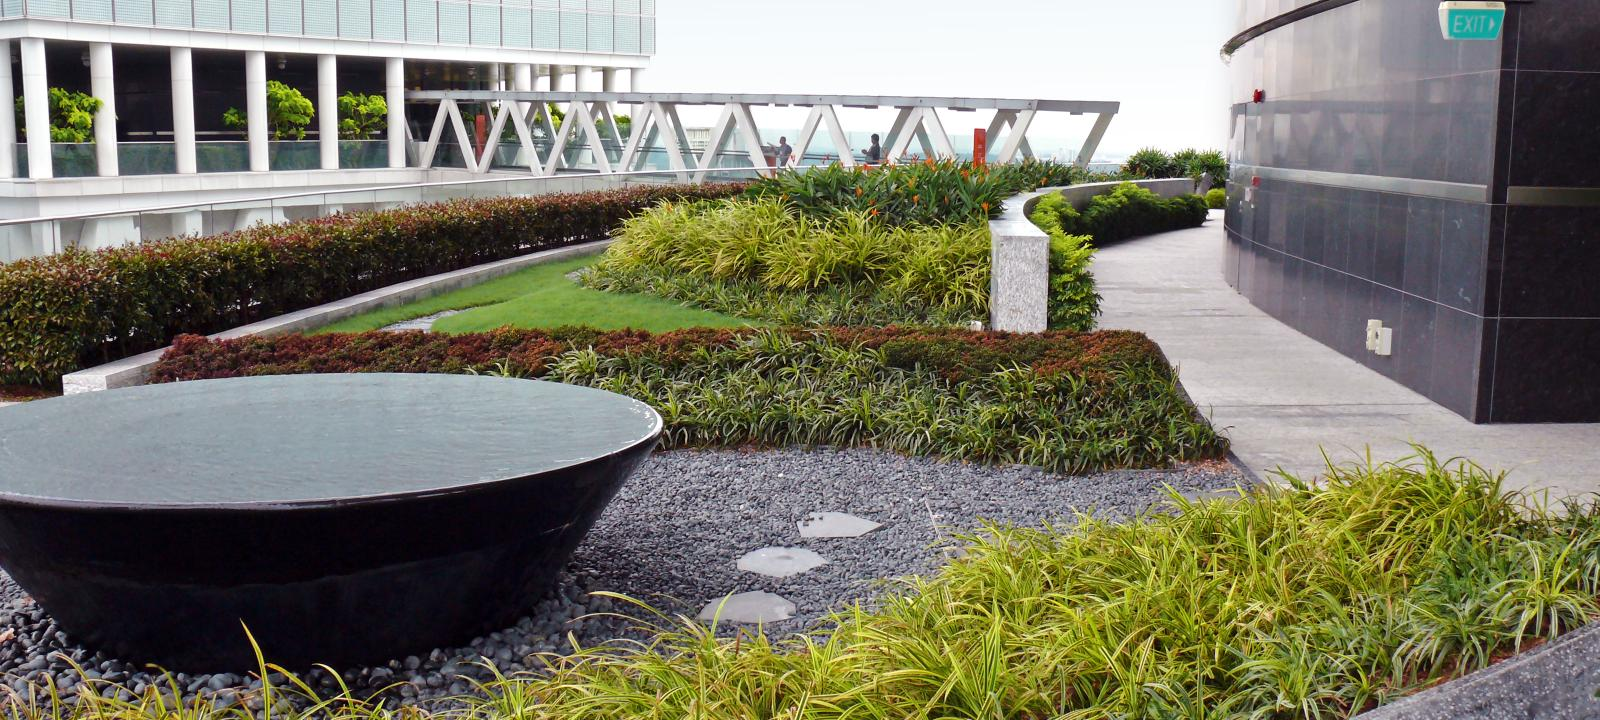 Roof garden with water basin